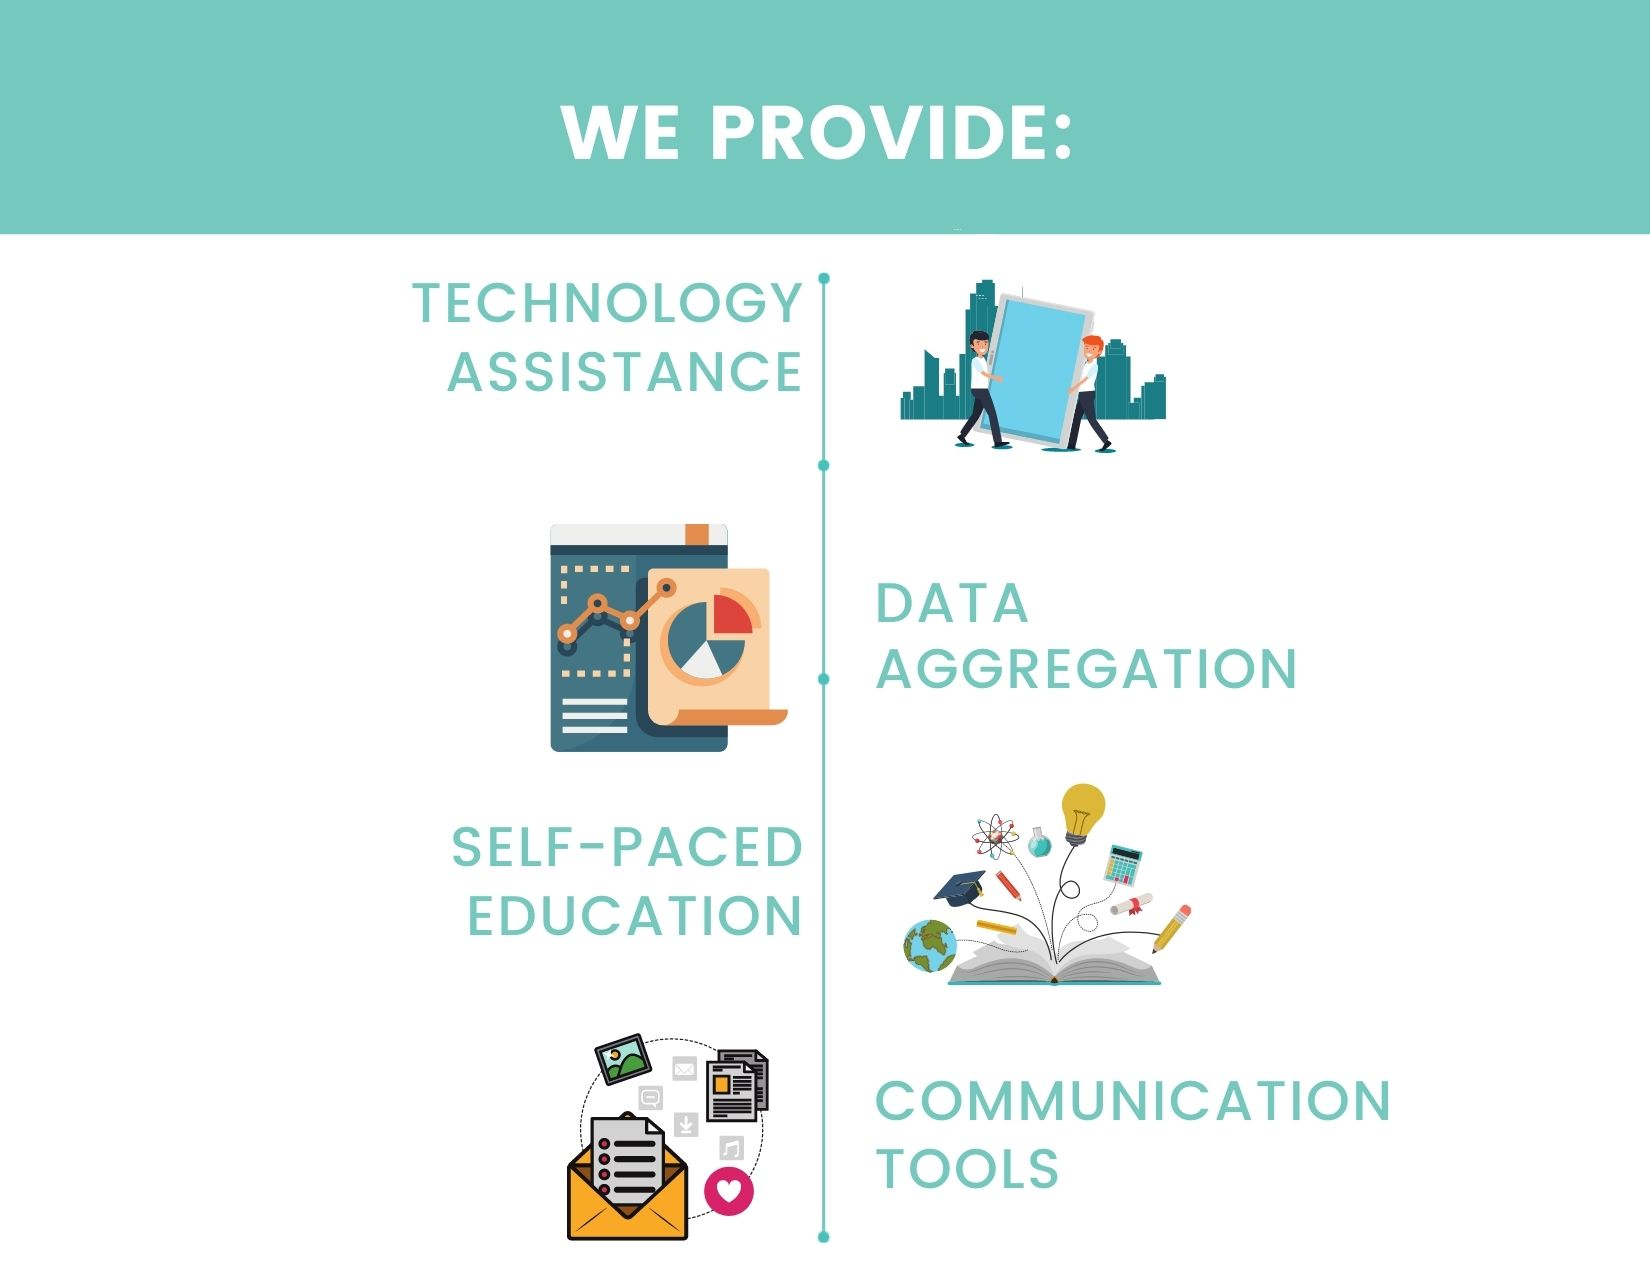 A graphic highlighting that GoLogic provides Technology Assistance, Data Aggregation, Self-Paced Education, and Communication Tools.